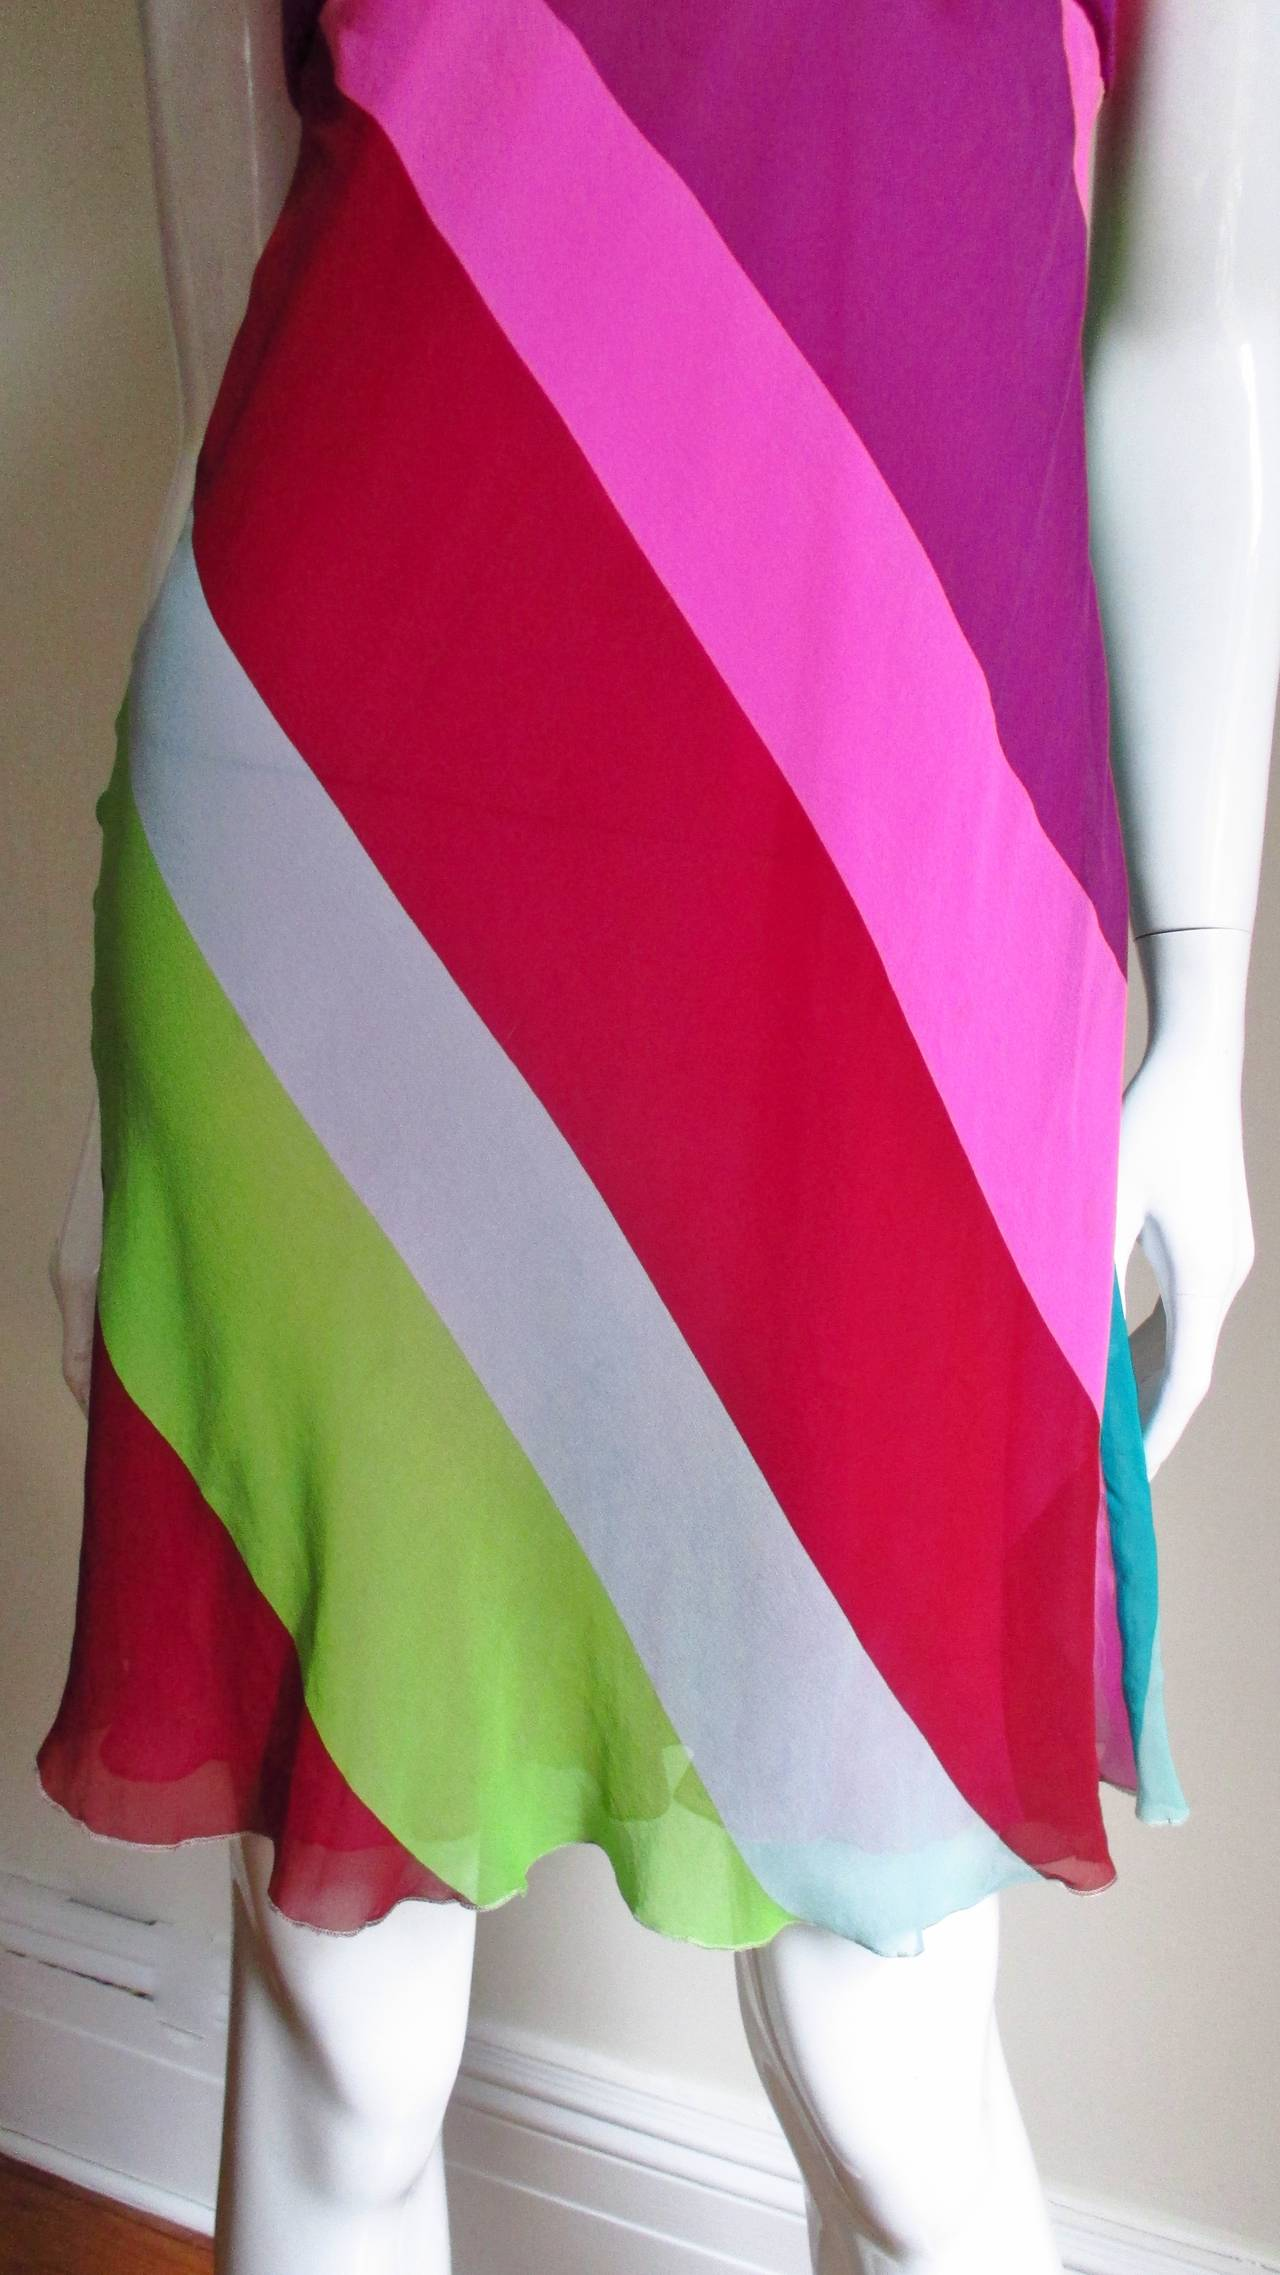 1990s Gianni Versace Striped Silk Babydoll Dress In New never worn Condition For Sale In New York, NY